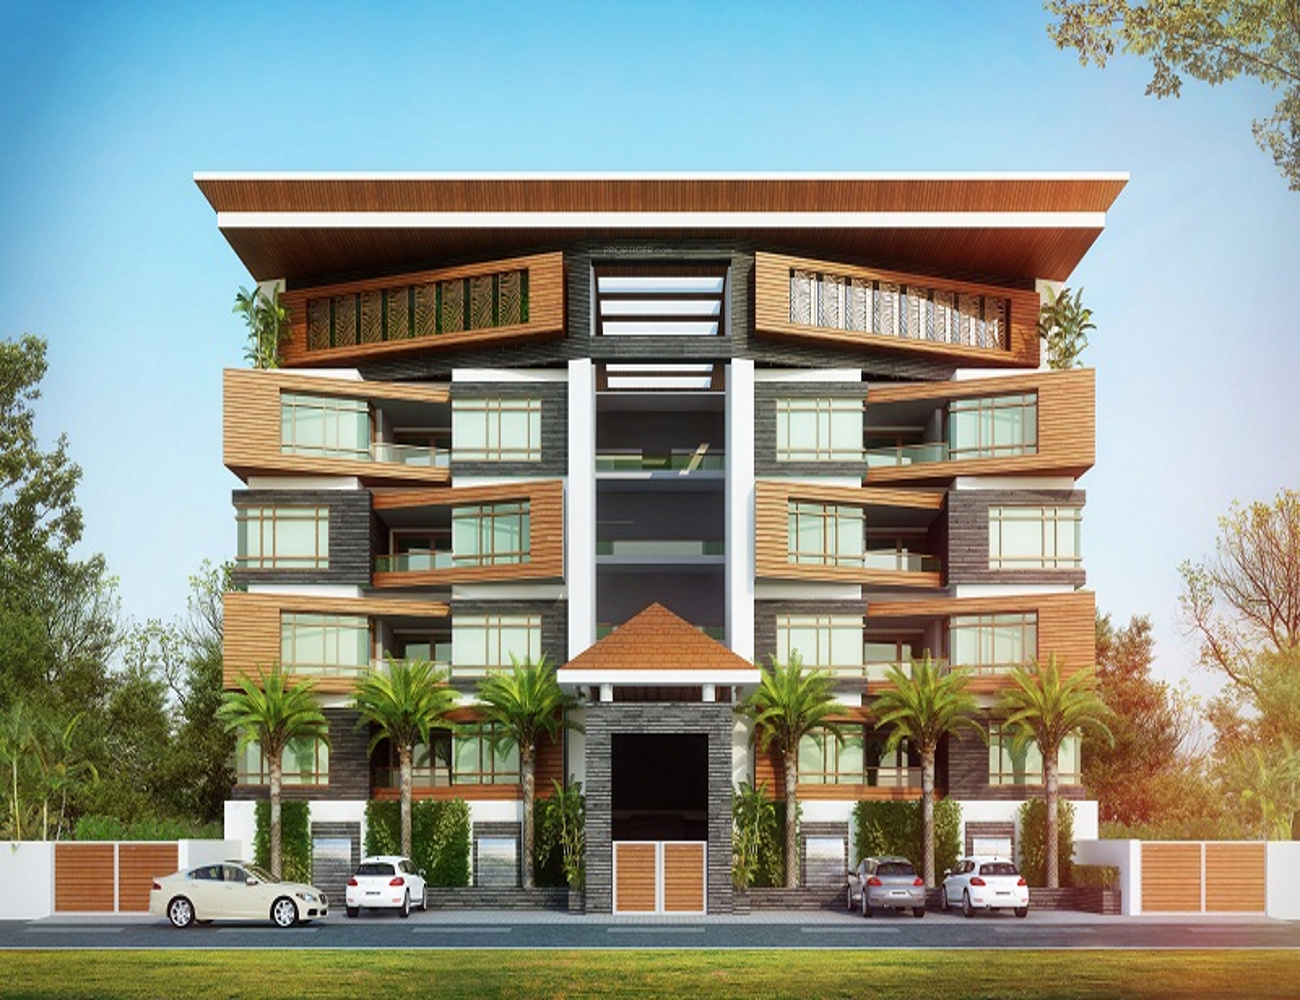 Residential building elevation photos residential building for Best elevations residential buildings